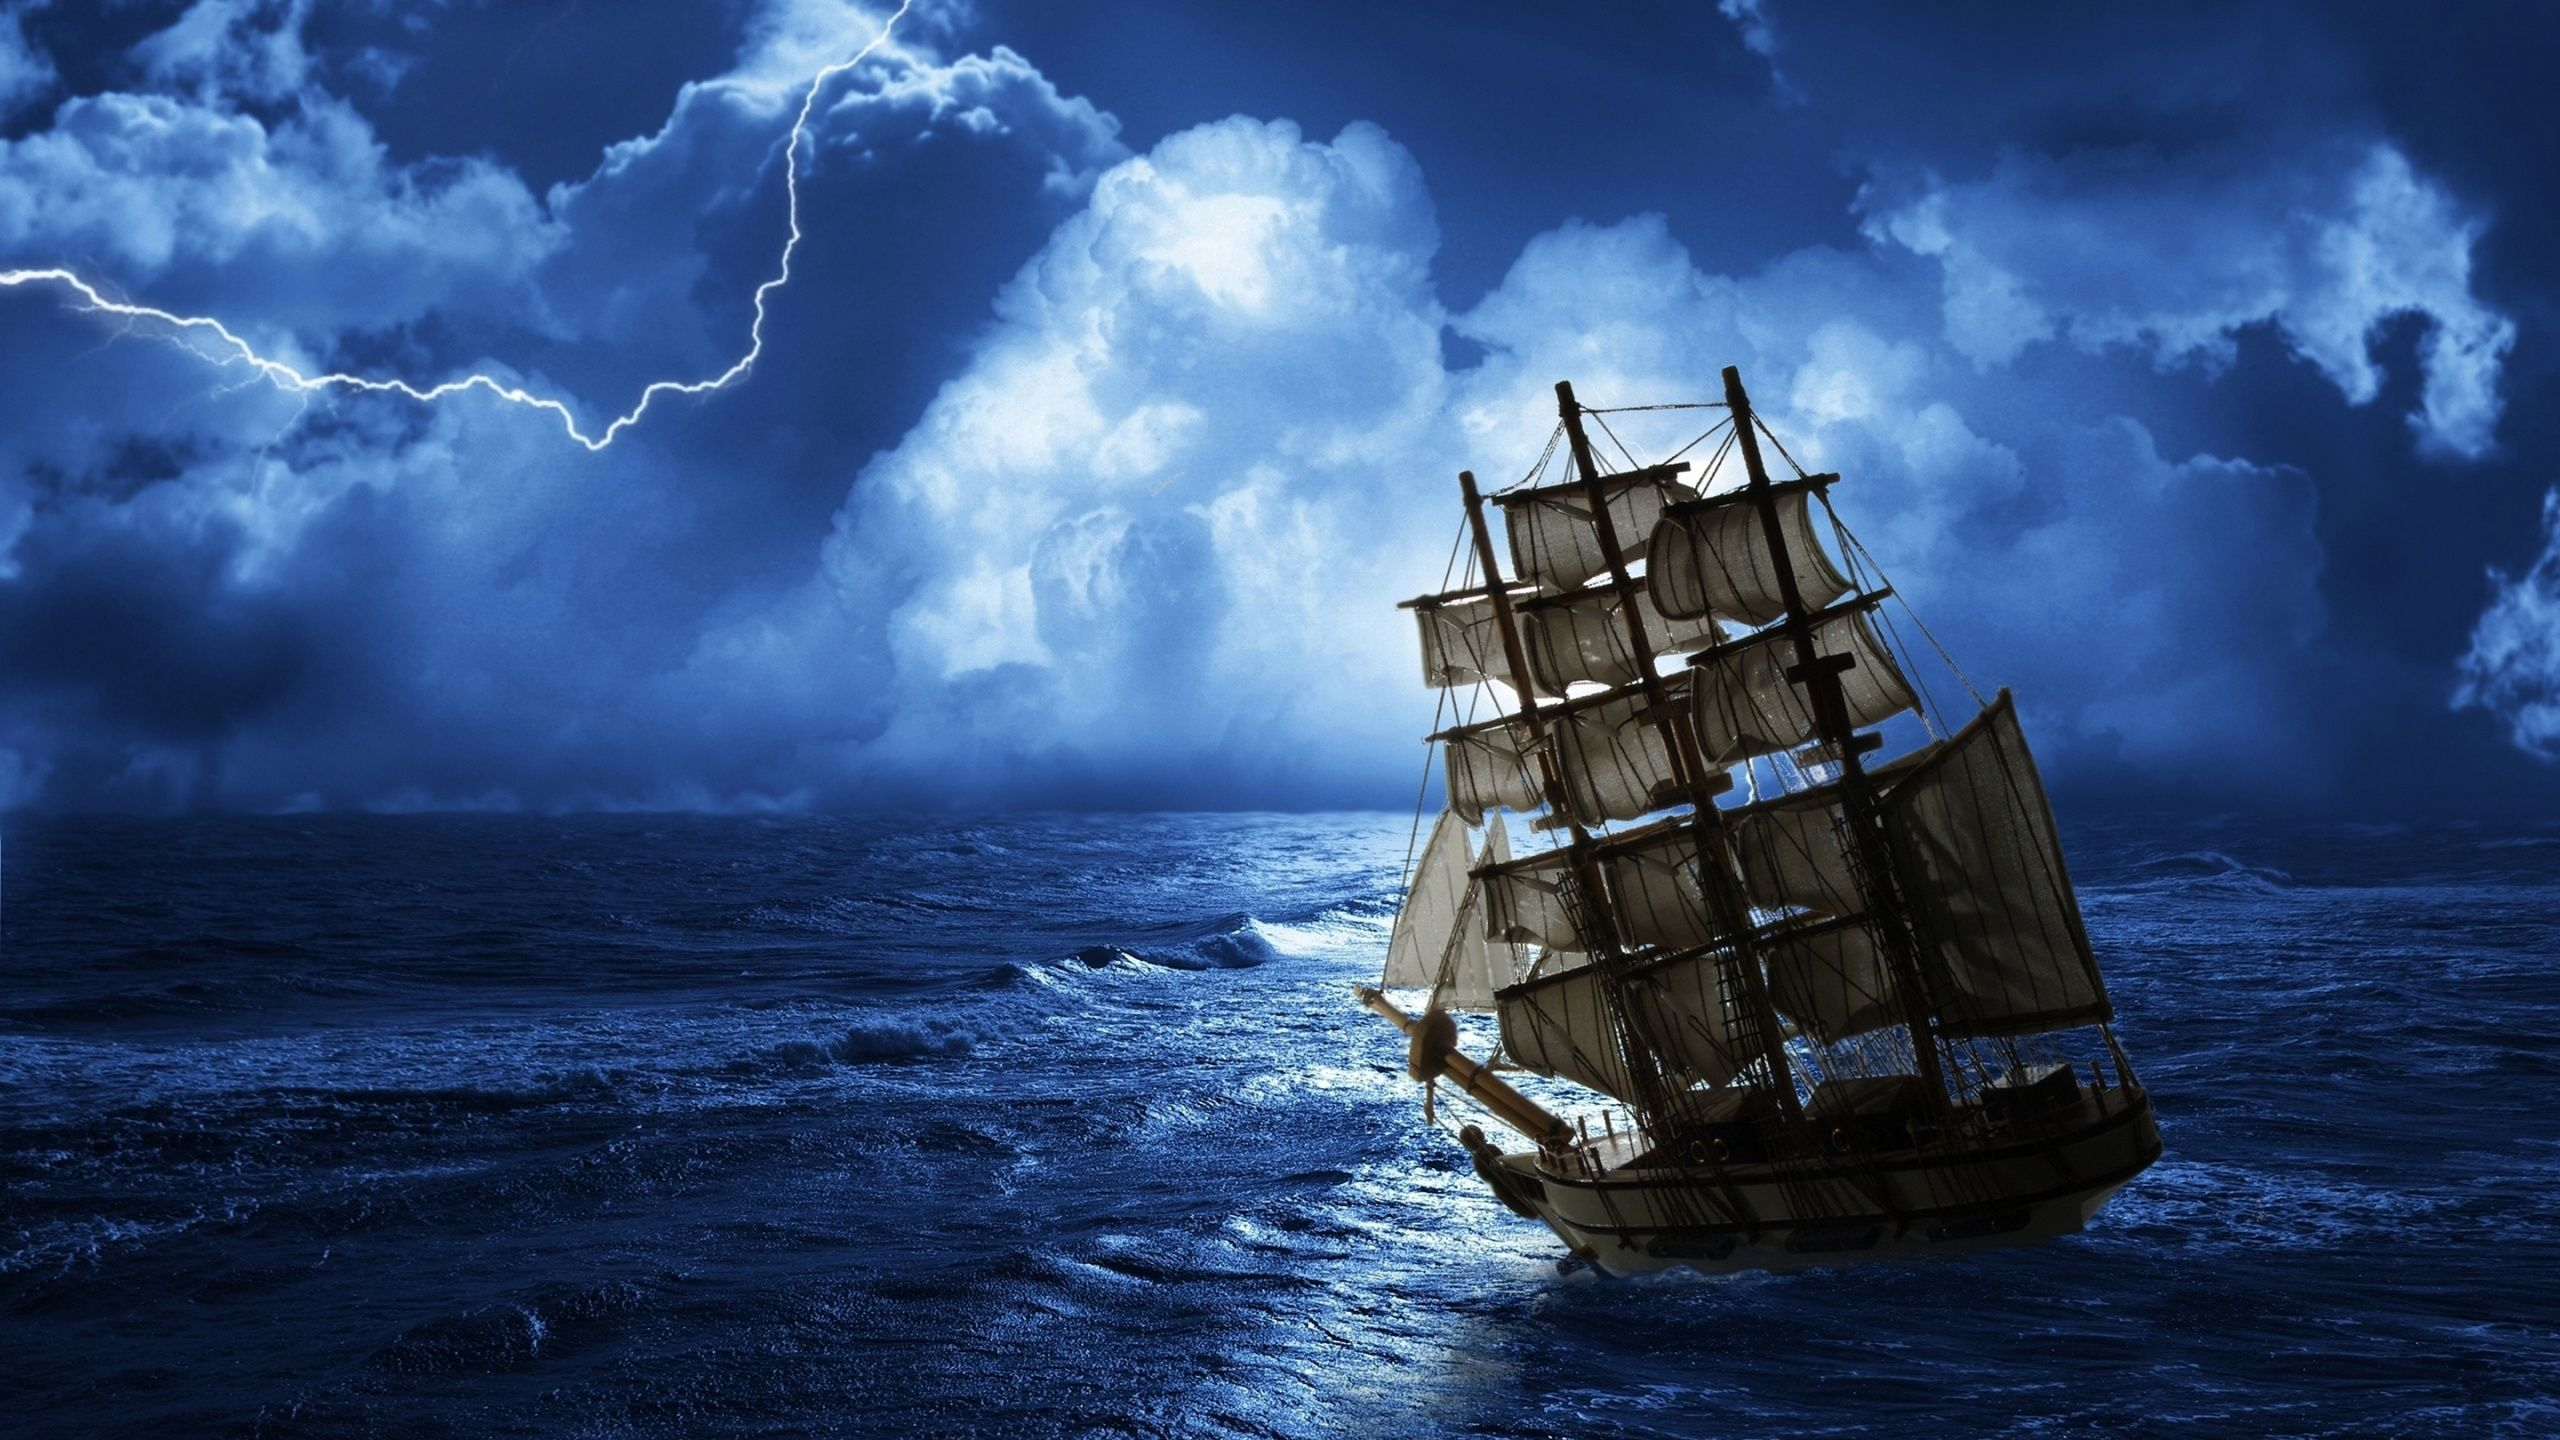 Wallpaper full desktop wallpapers images pictures storm storm clouds - Sea Ship Ghost Wallpaper Free Art Tall Ships